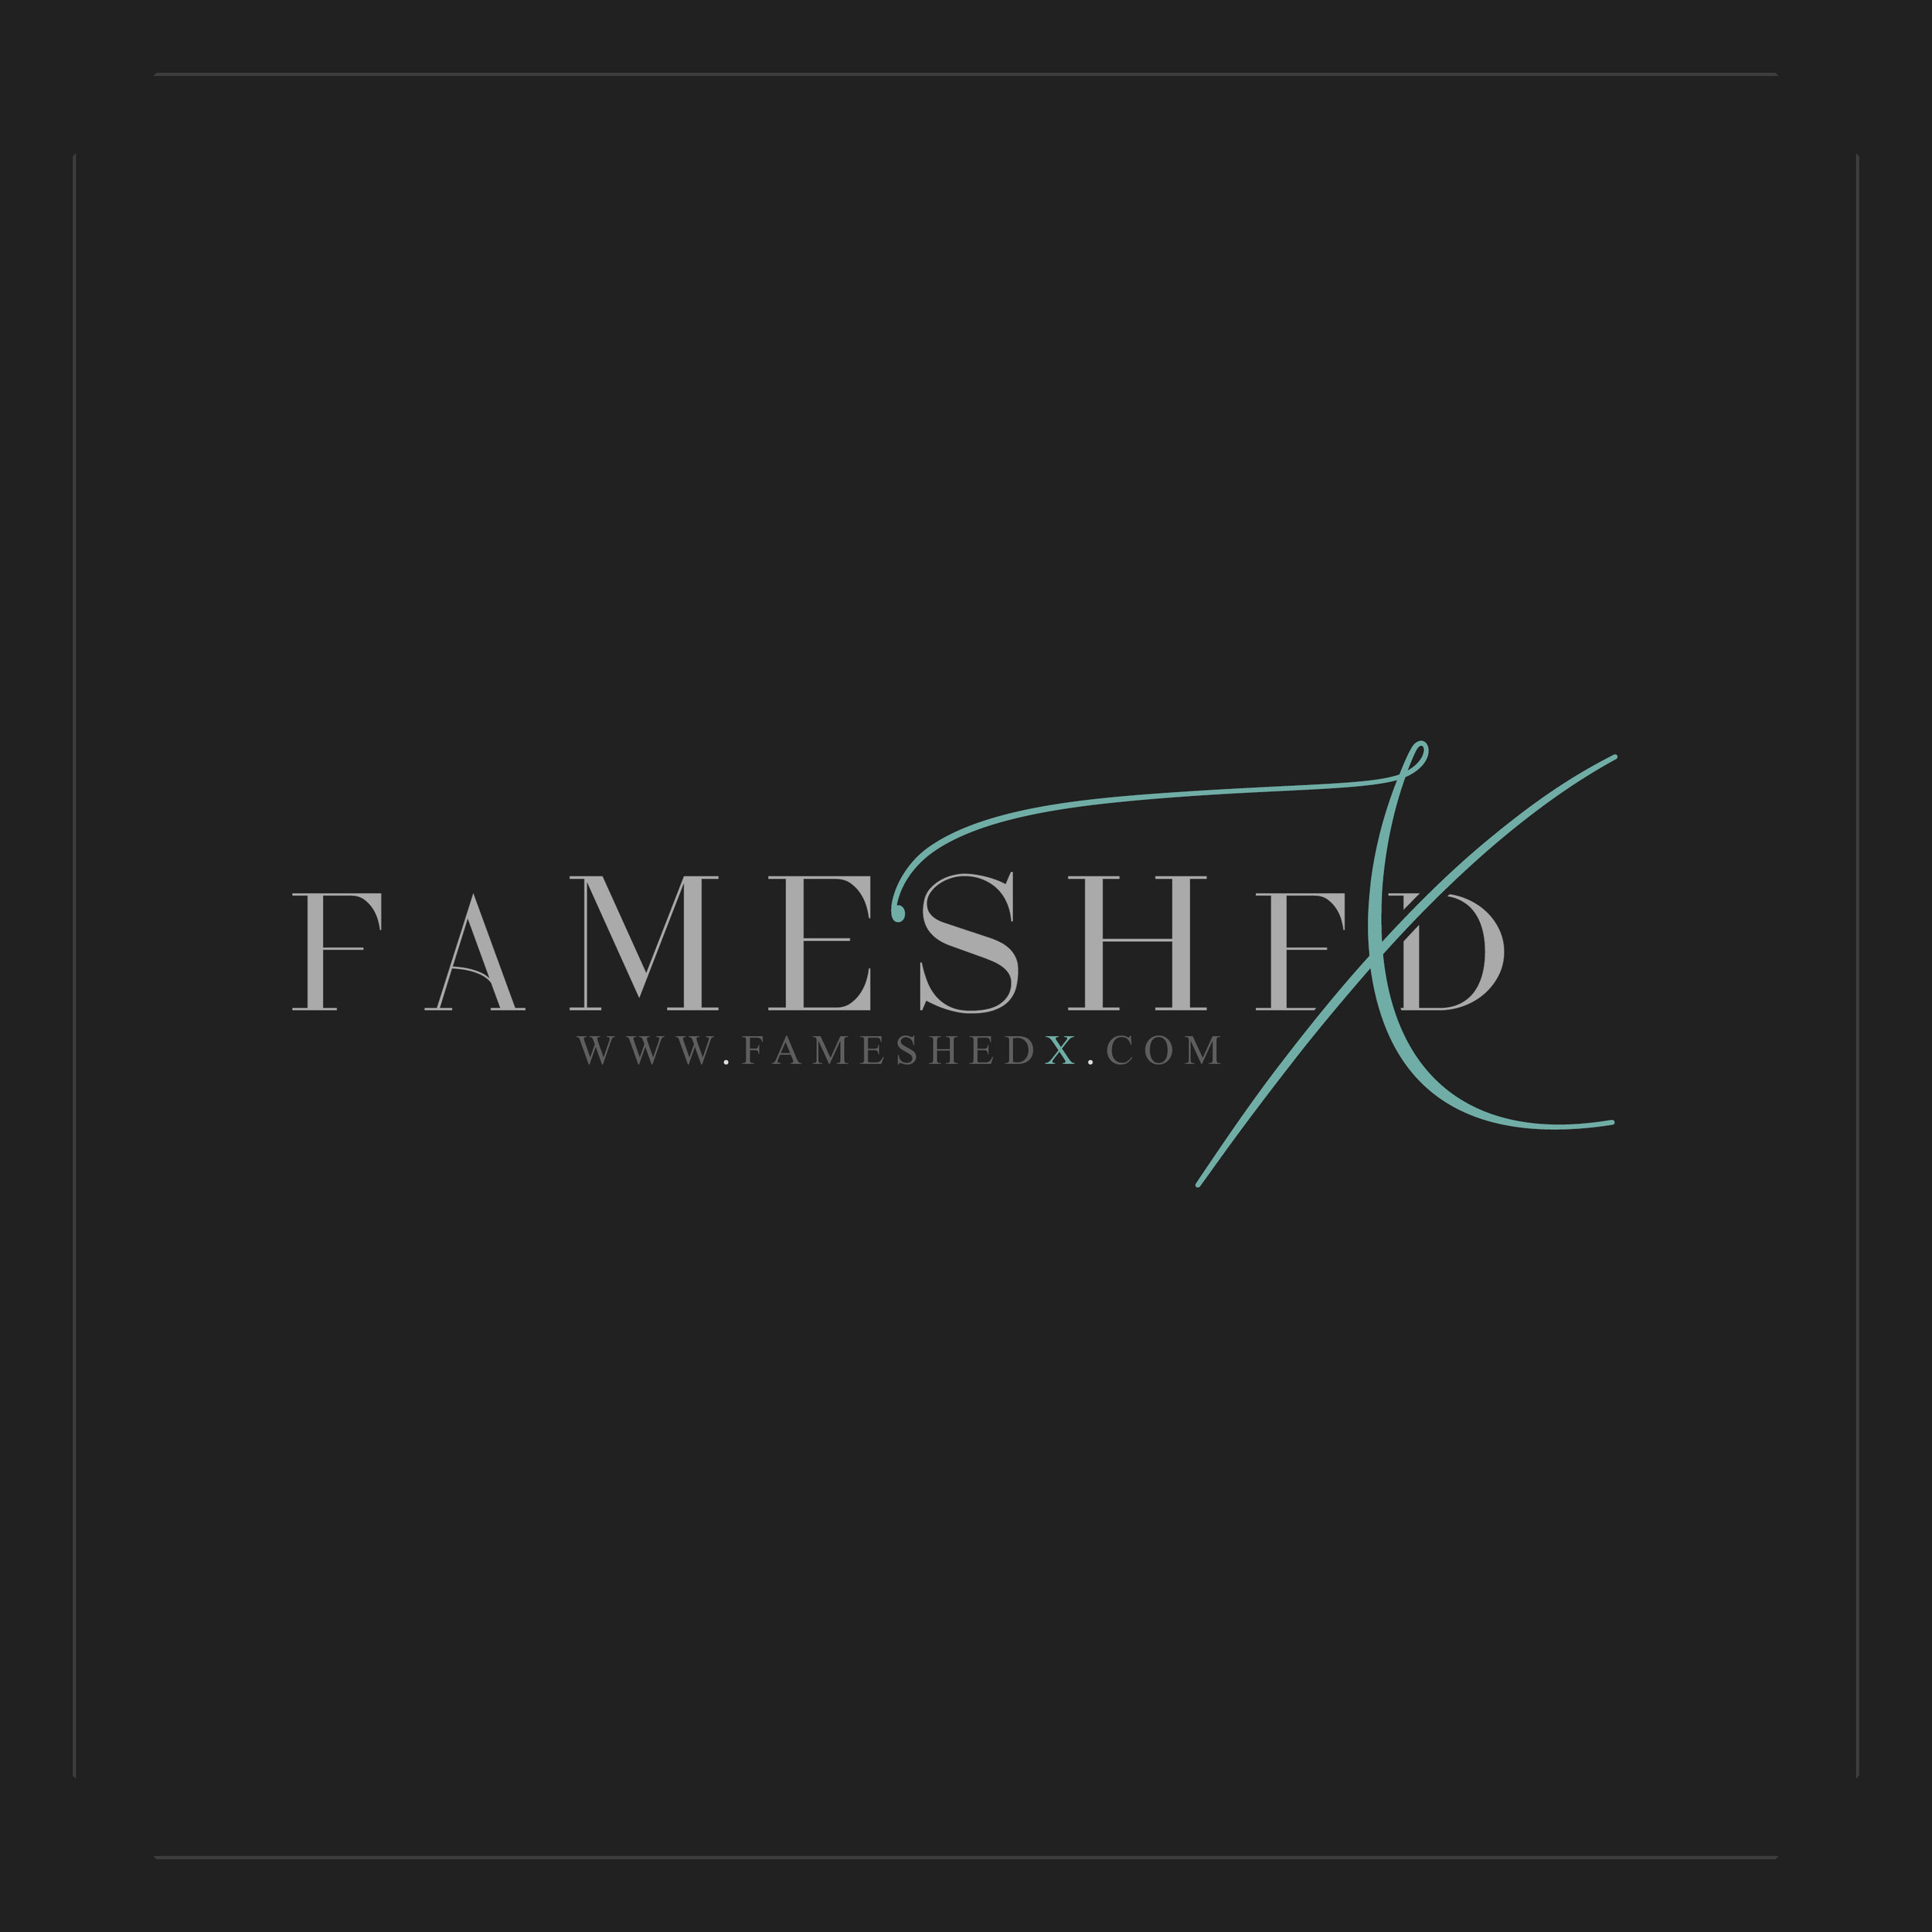 X by fameshed